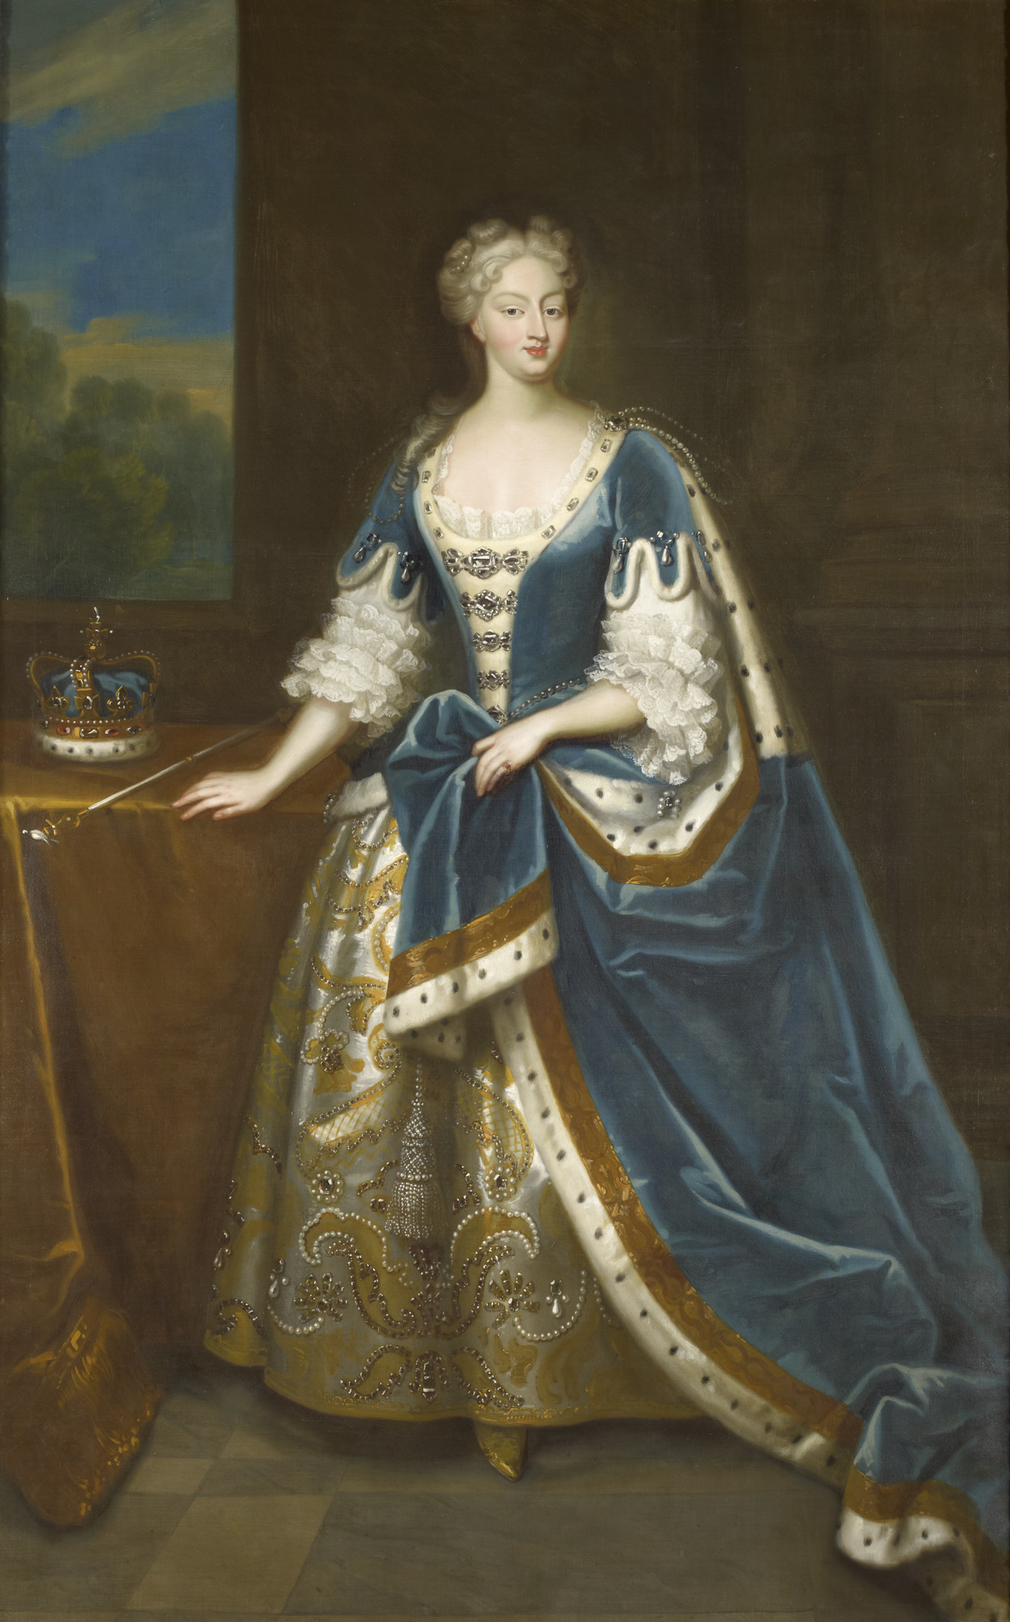 Seeman was an artist of Dutch extraction born in London who worked for George II and Frederick, Prince of Wales, but whose output is represented in the Royal Collection by versions of just two images – official portraits of George II and Queen Carol